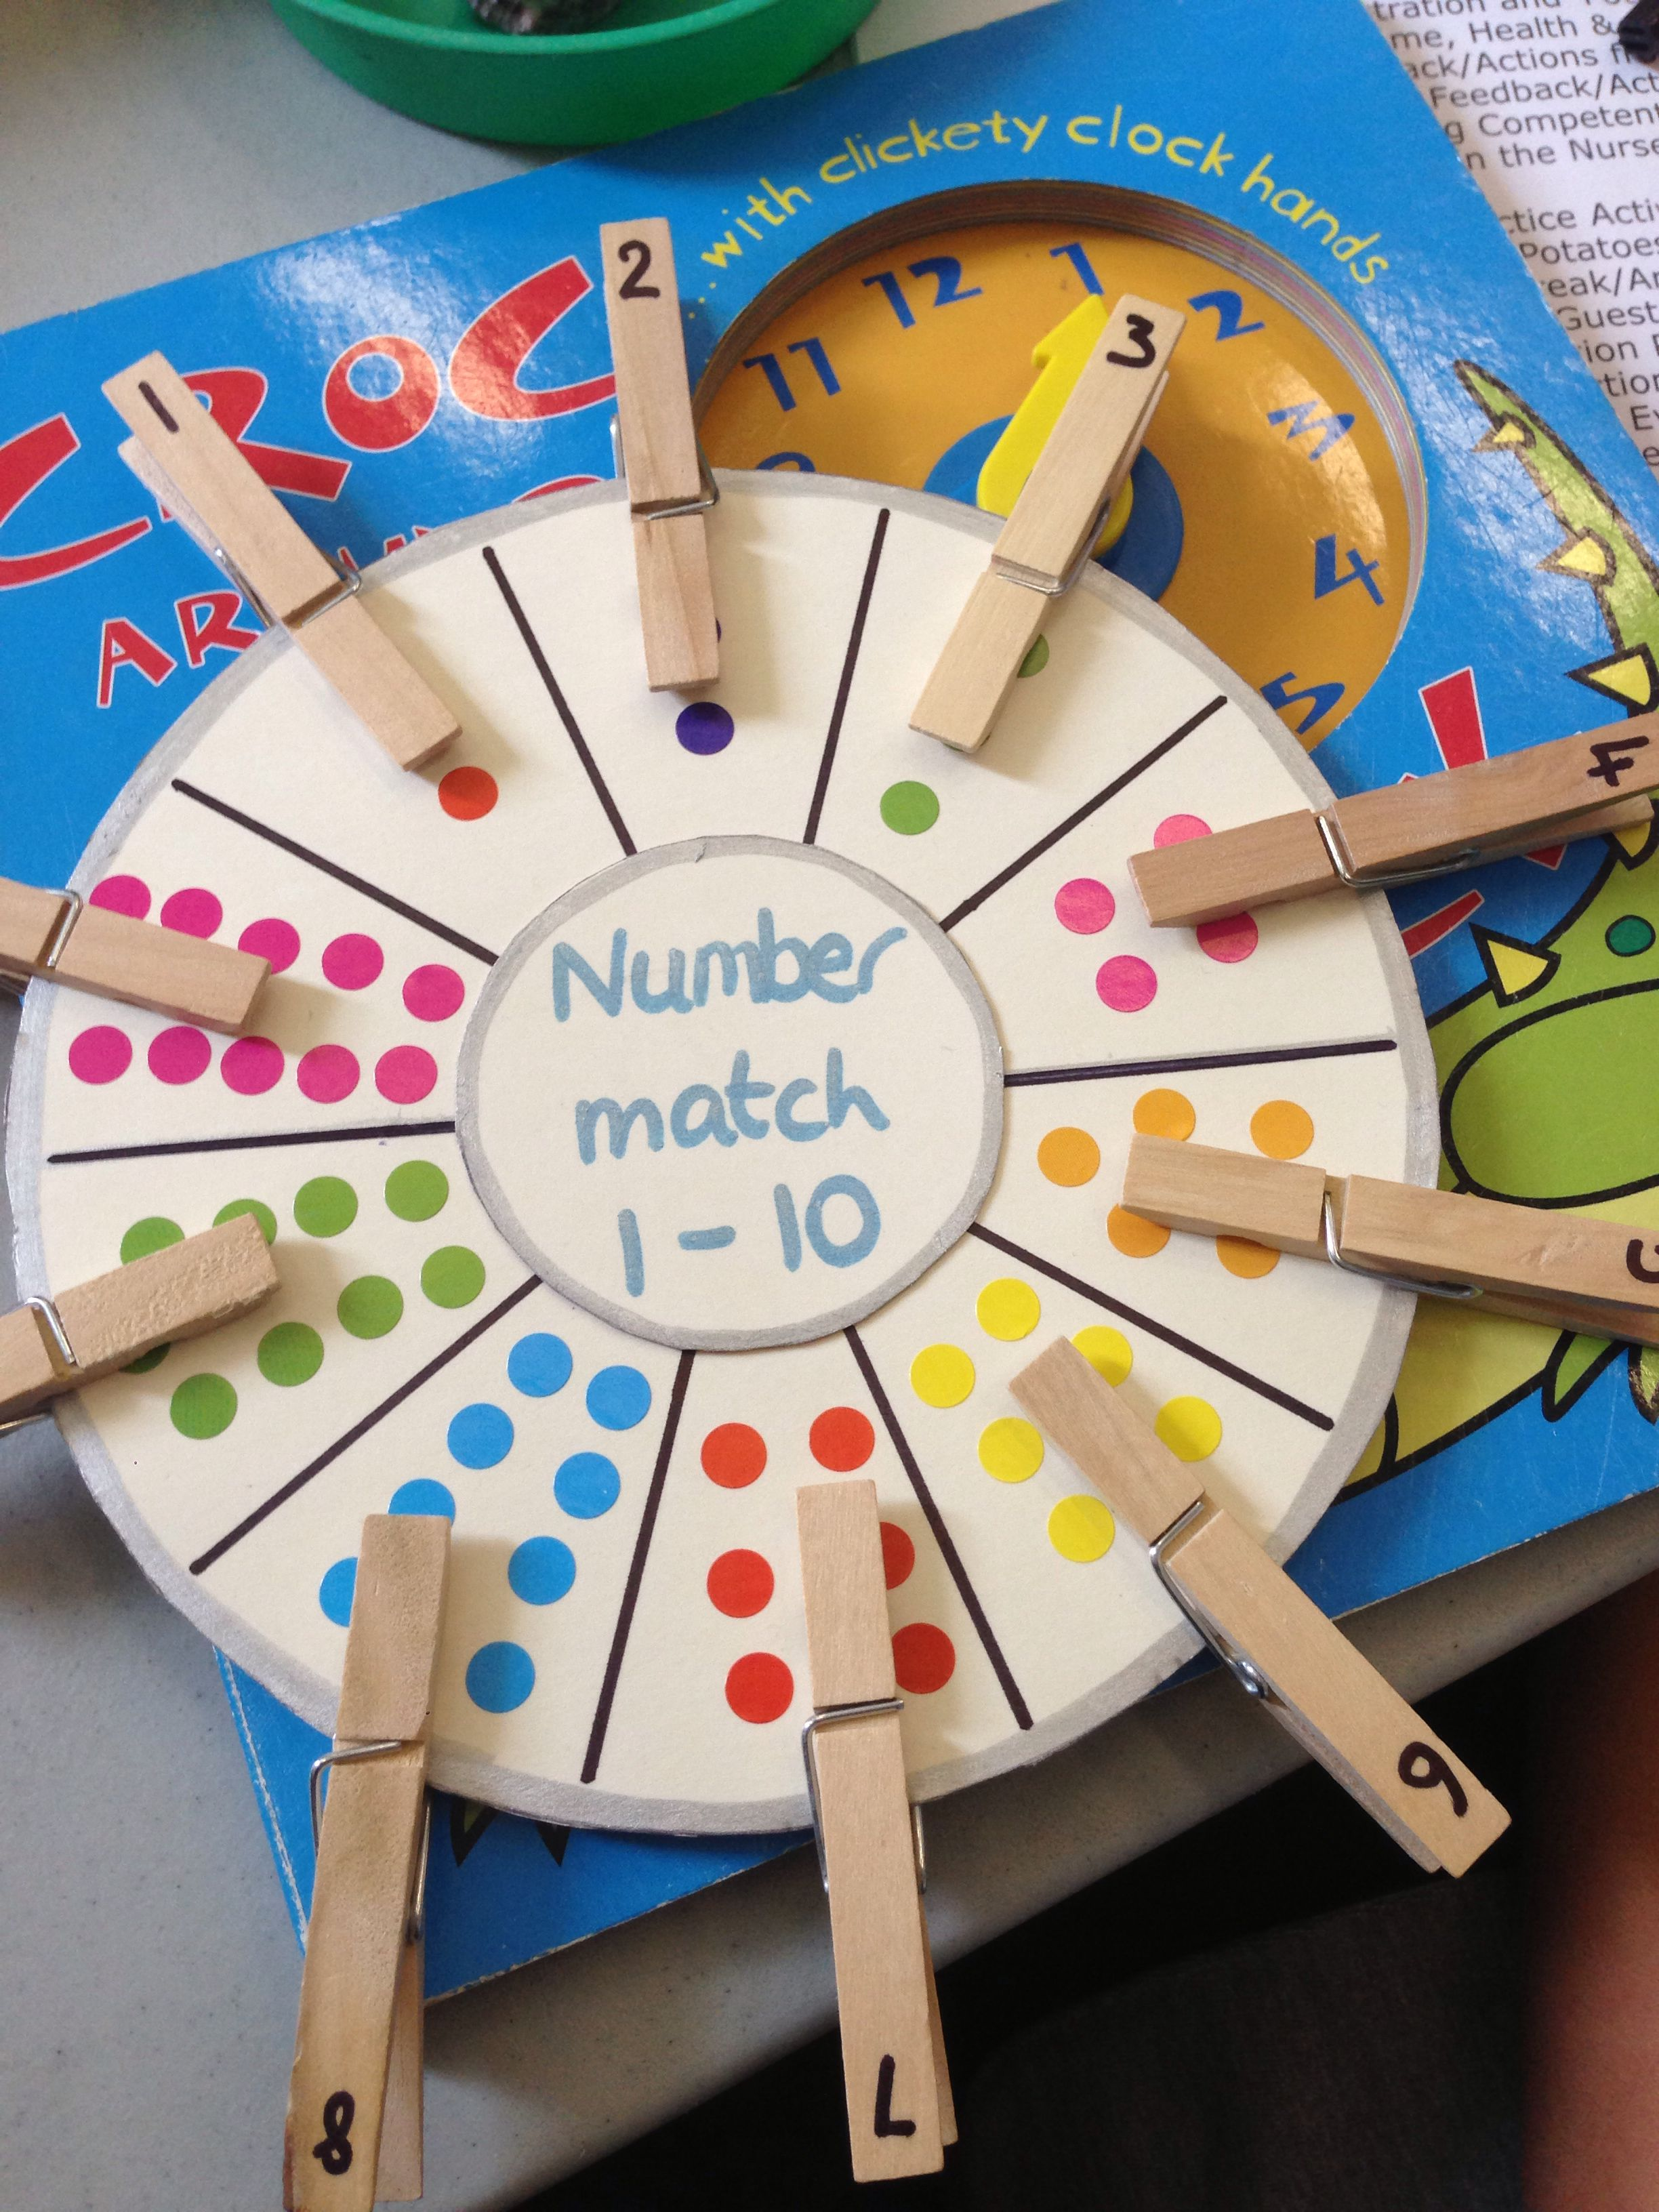 Image Only Number Matching Wheel Using Clothespins And Stickers Pinned By Super Simple Songs